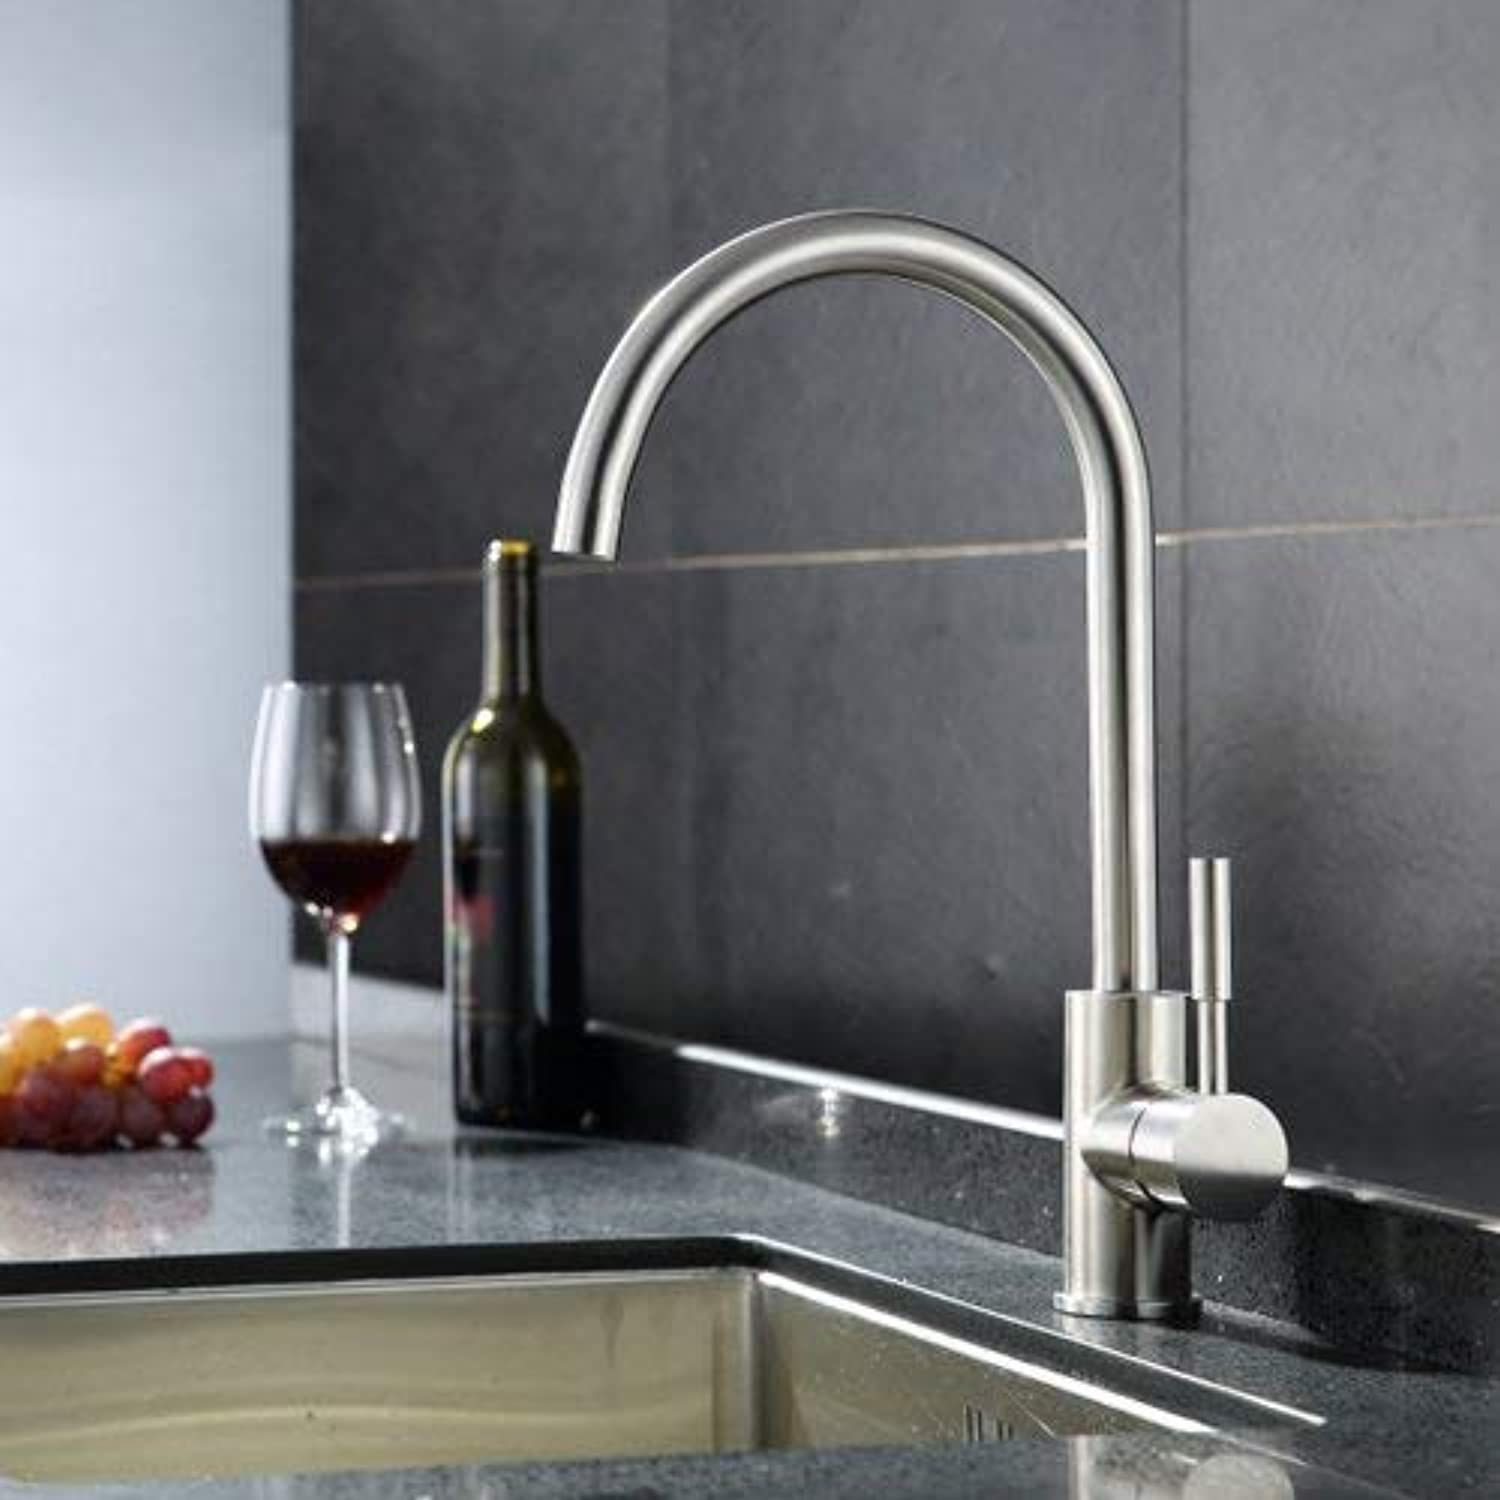 Stainless Steel Single-Lever Kitchen Mixer Hot and Cold Ceramic Kitchen Mixer Kitchen Sink Ceramic Valve Faucet (color  A)